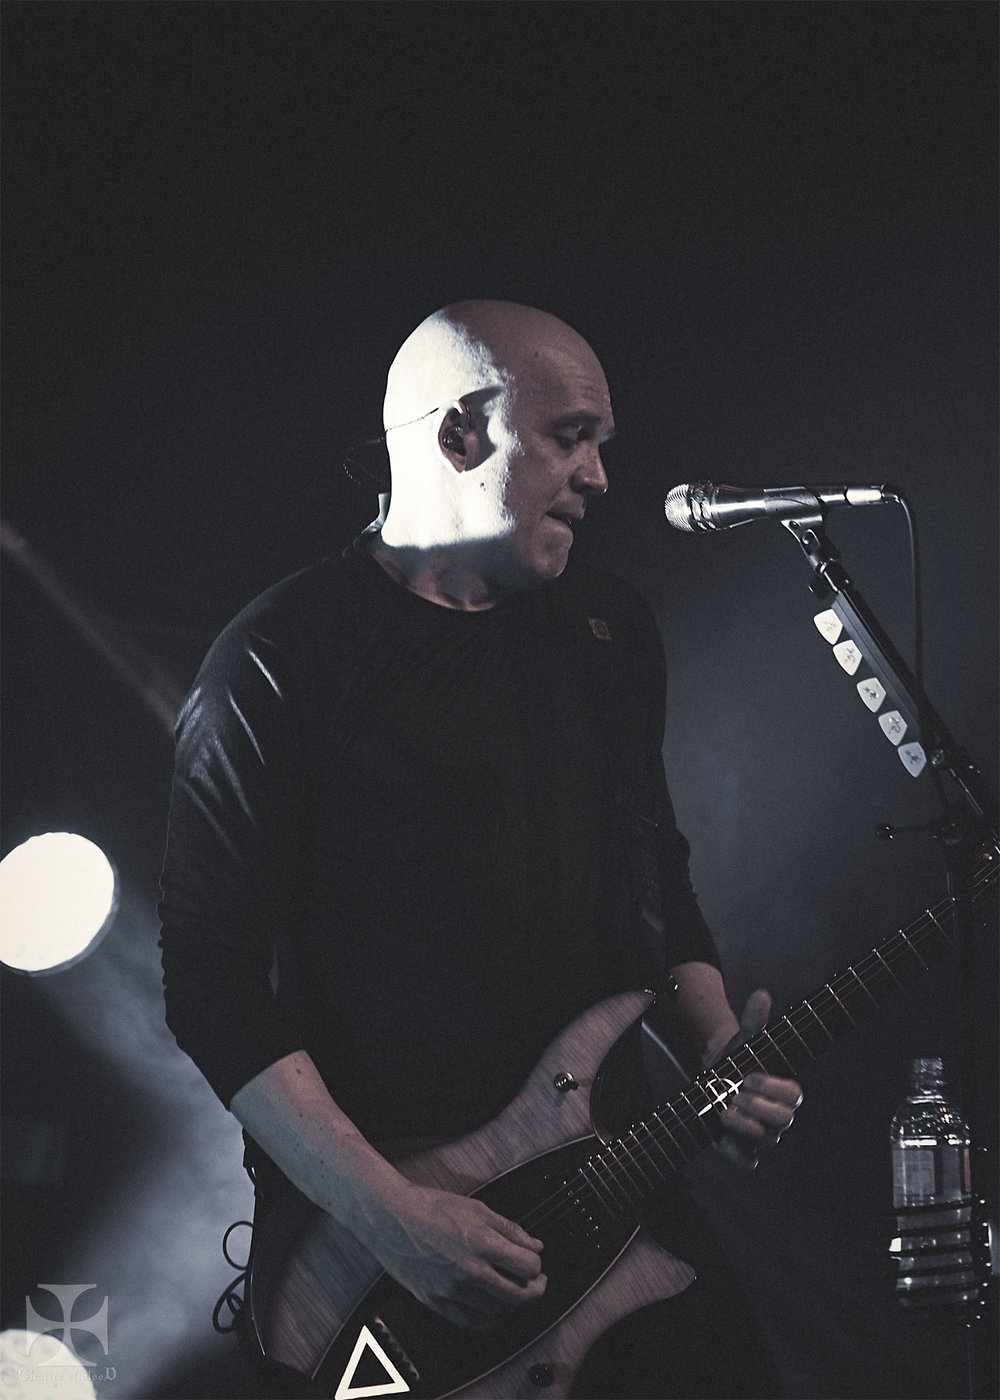 2017.05-Devin-Townsend---146-Exposure-watermarked.jpg